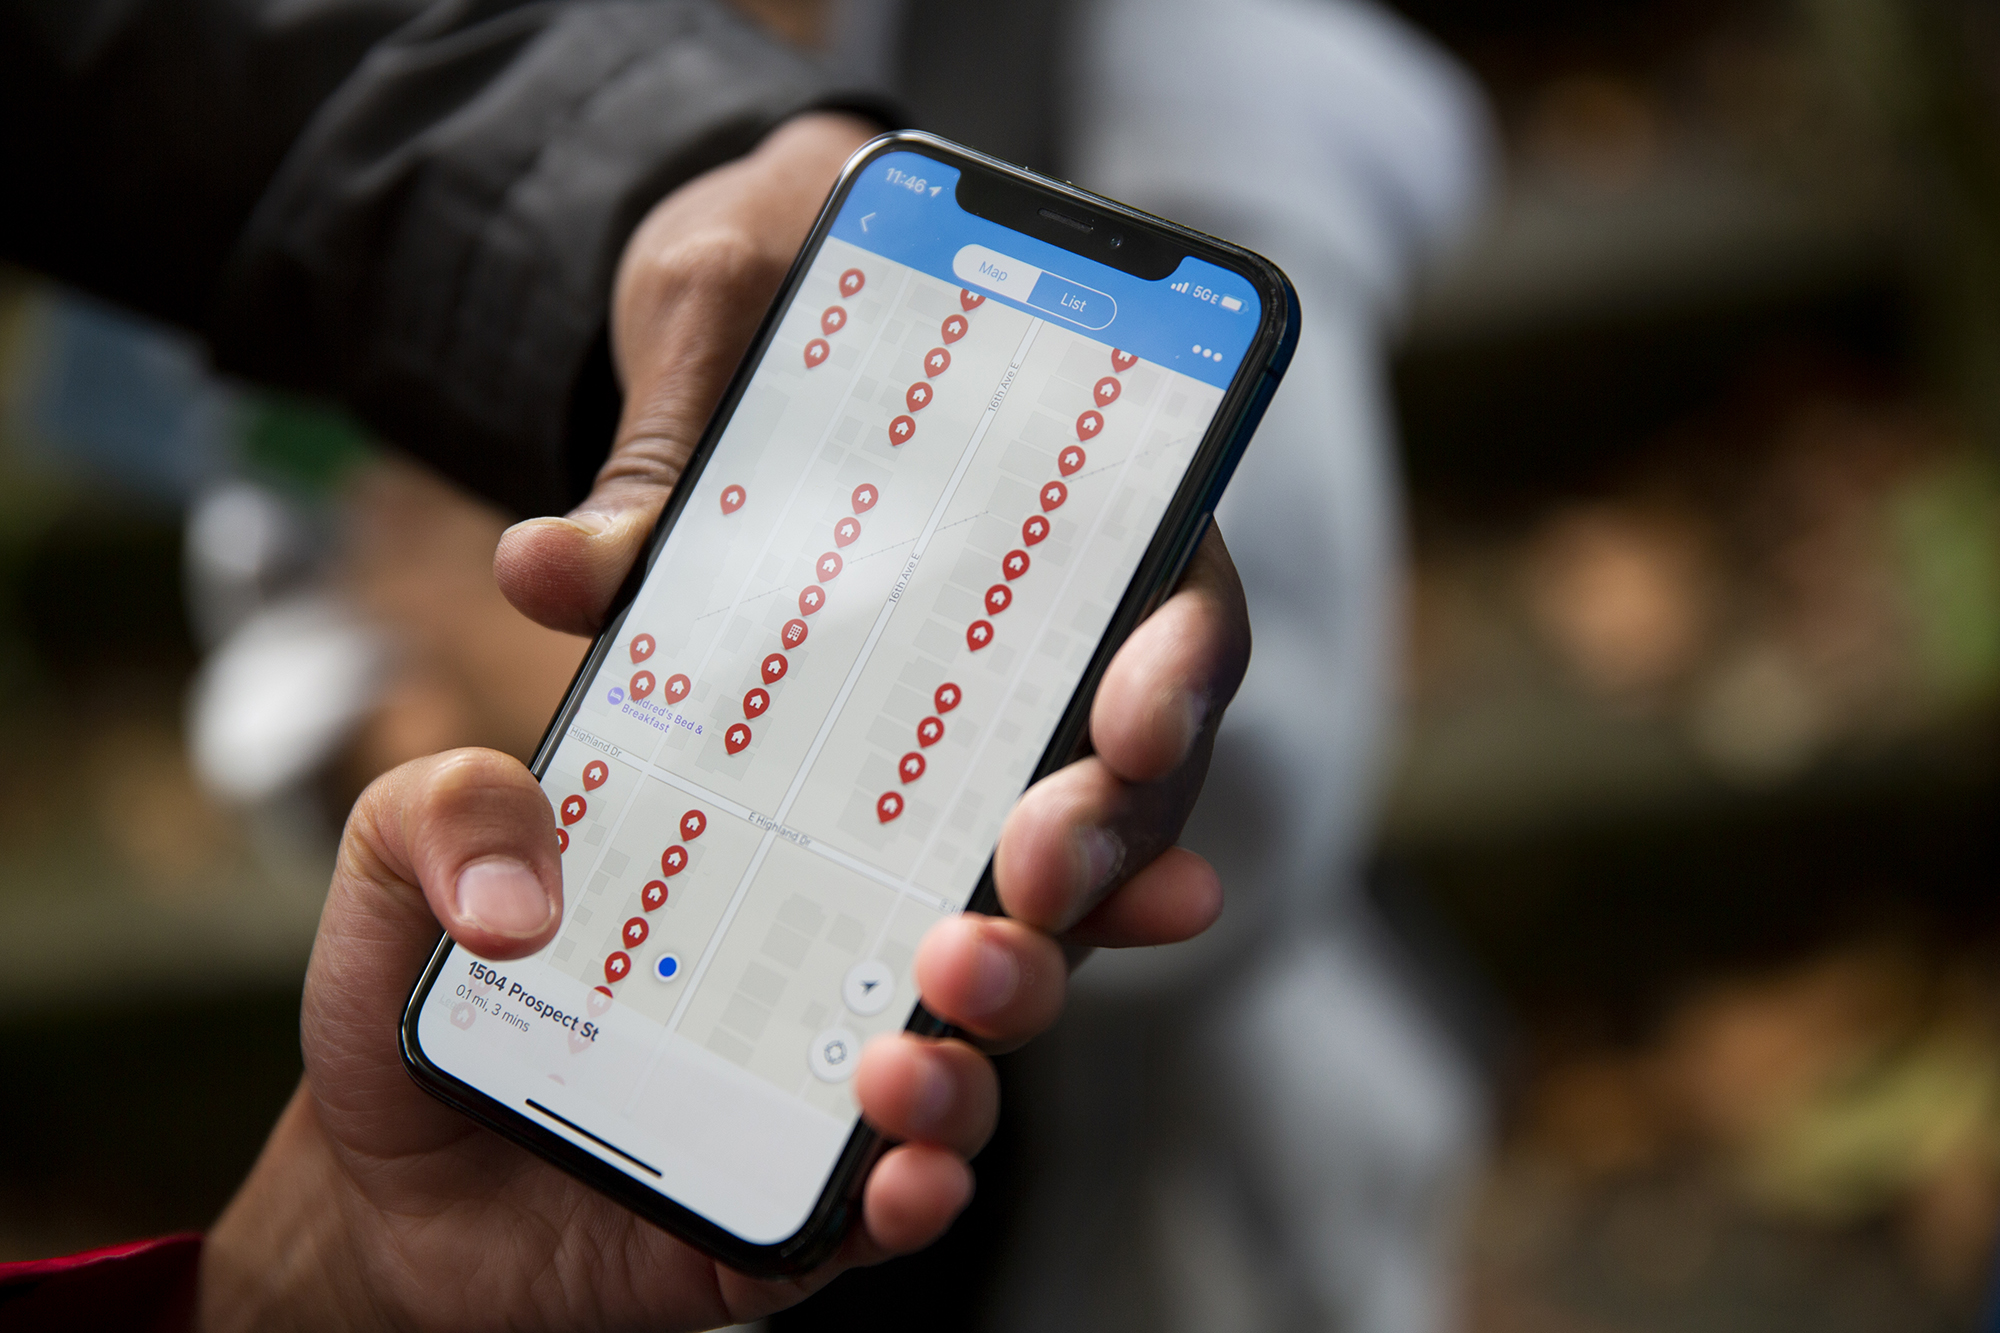 A volunteer holds a smart phone showing a map of households visited by the campaign.